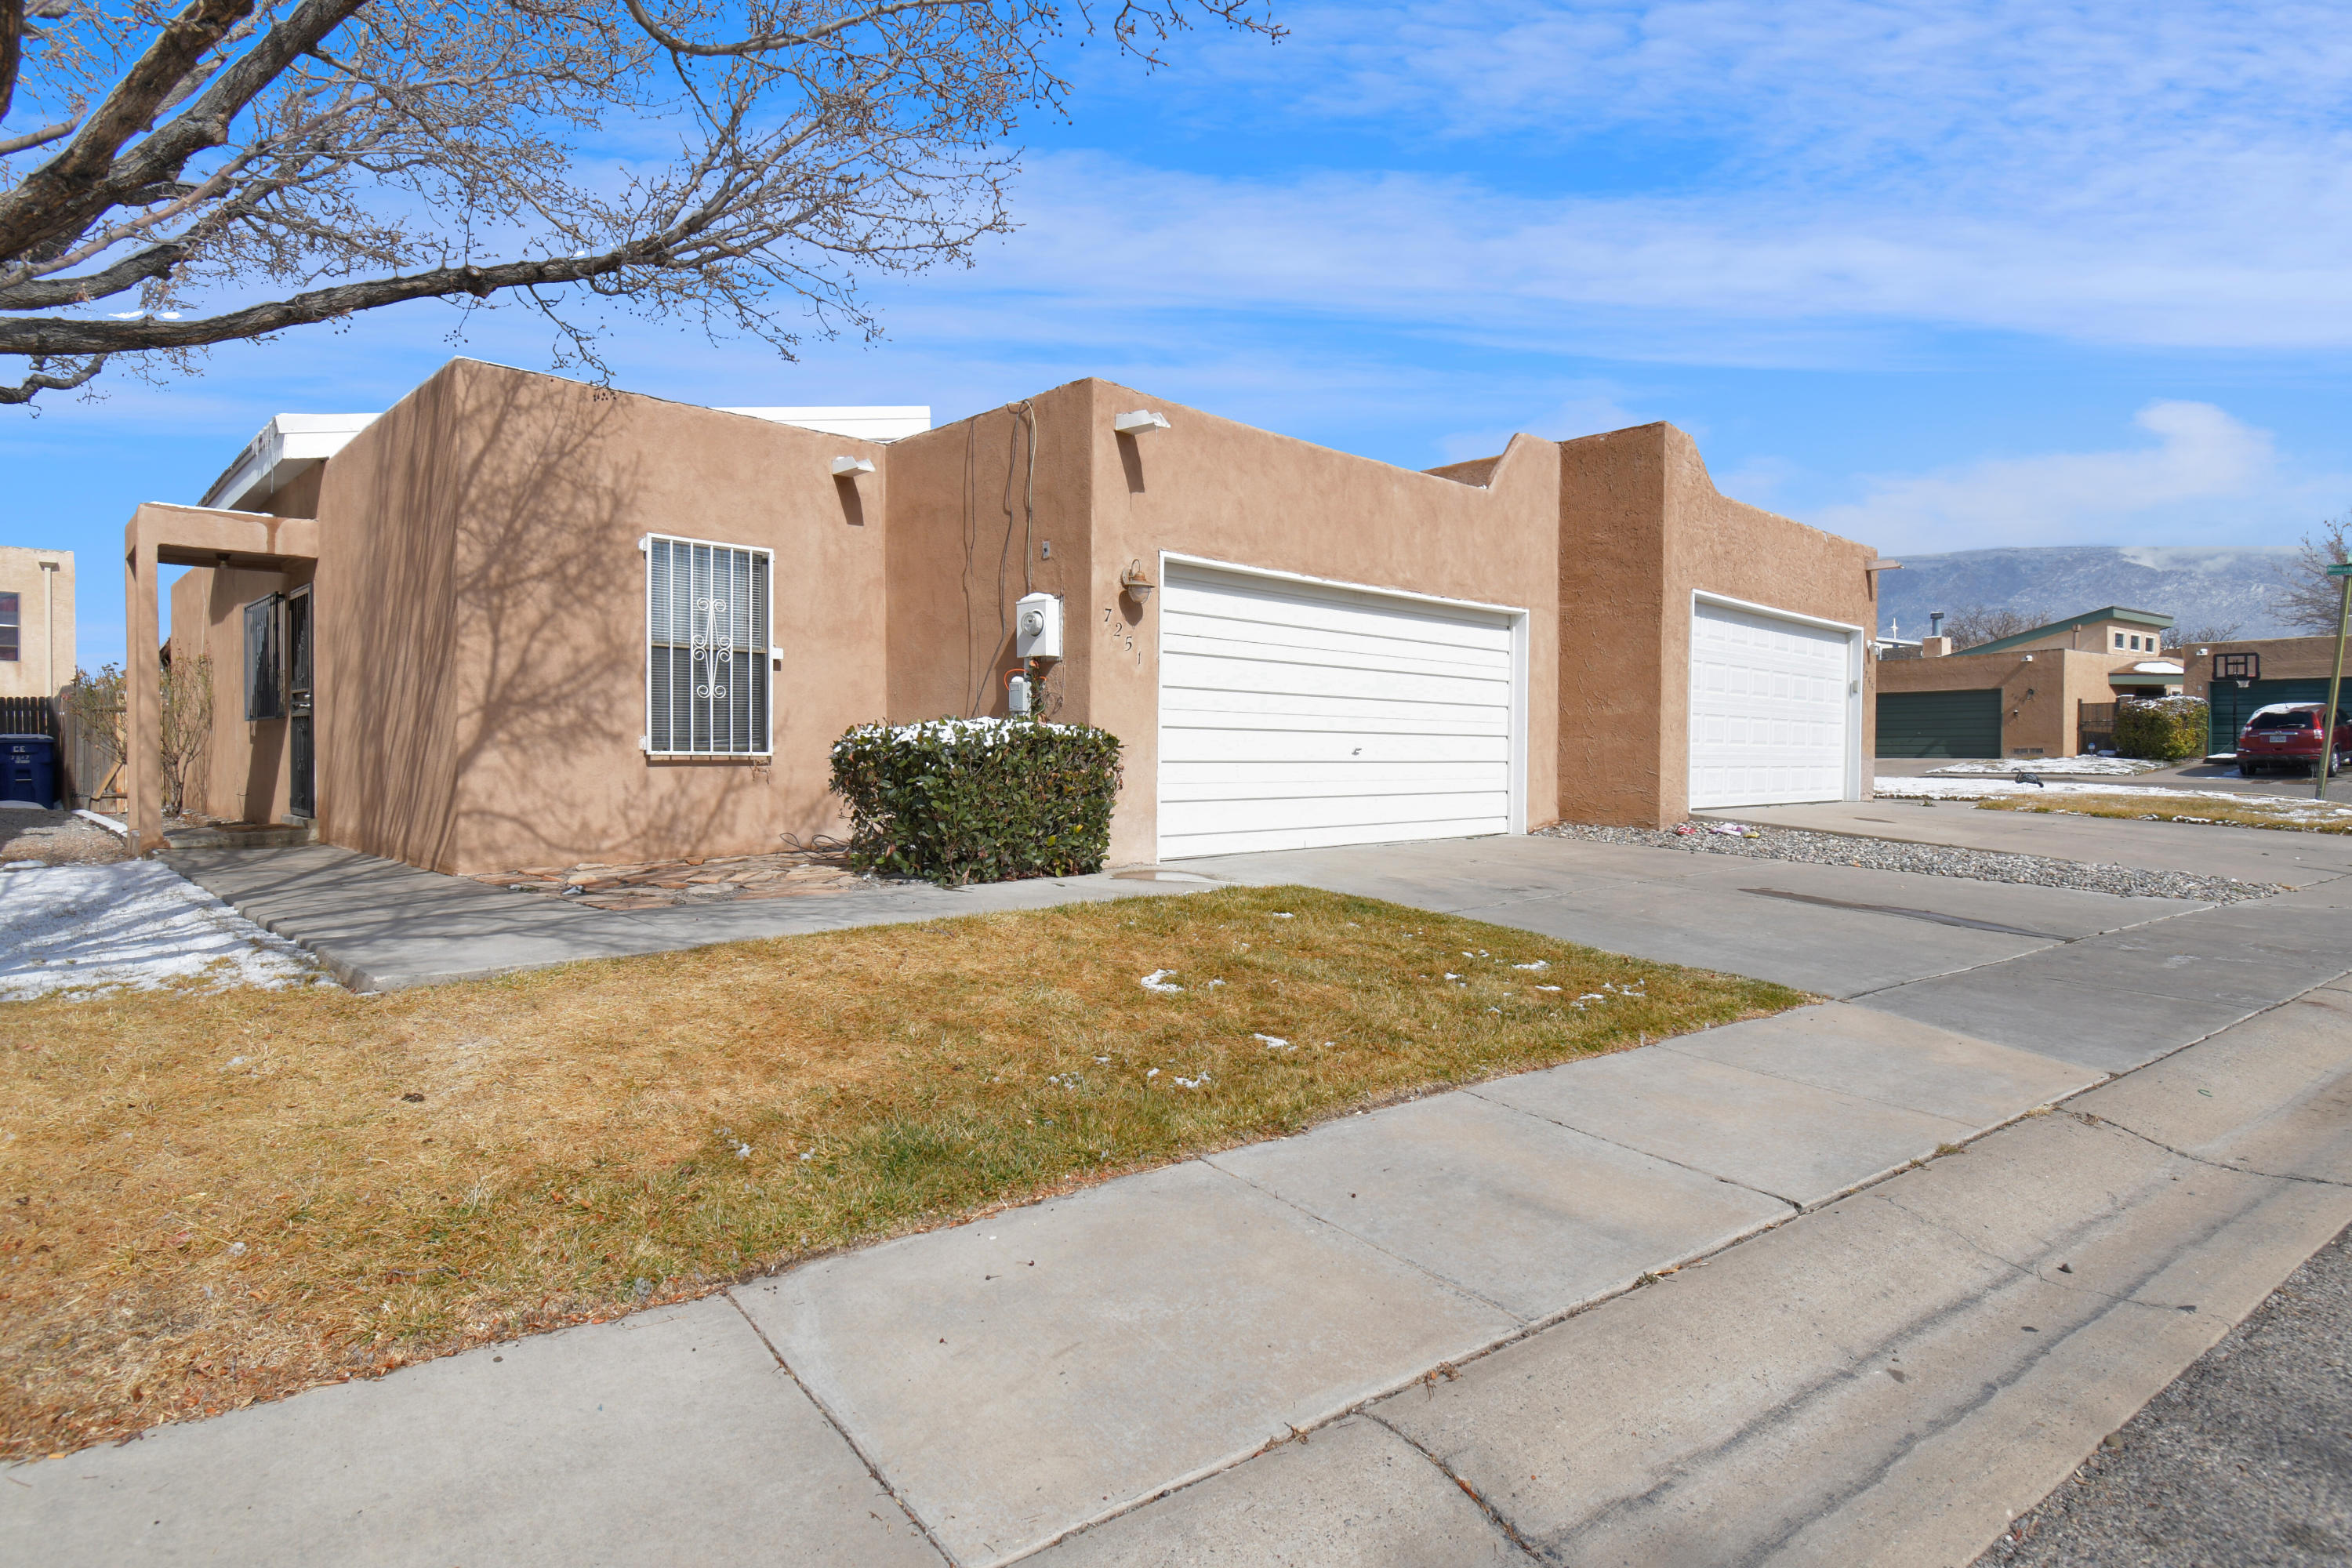 You Will Feel Right At Home In This Inviting Townhome. Just One Block To All The Shops @ Paseo & Wyoming. The Open Floorplan Offers A Large Living Room With Vaulted Ceilings & Clerestory Windows. New Roof 2019, New Furnace 2021. Hard To Find Location. Refrigerator, Washer & Dryer Stay!